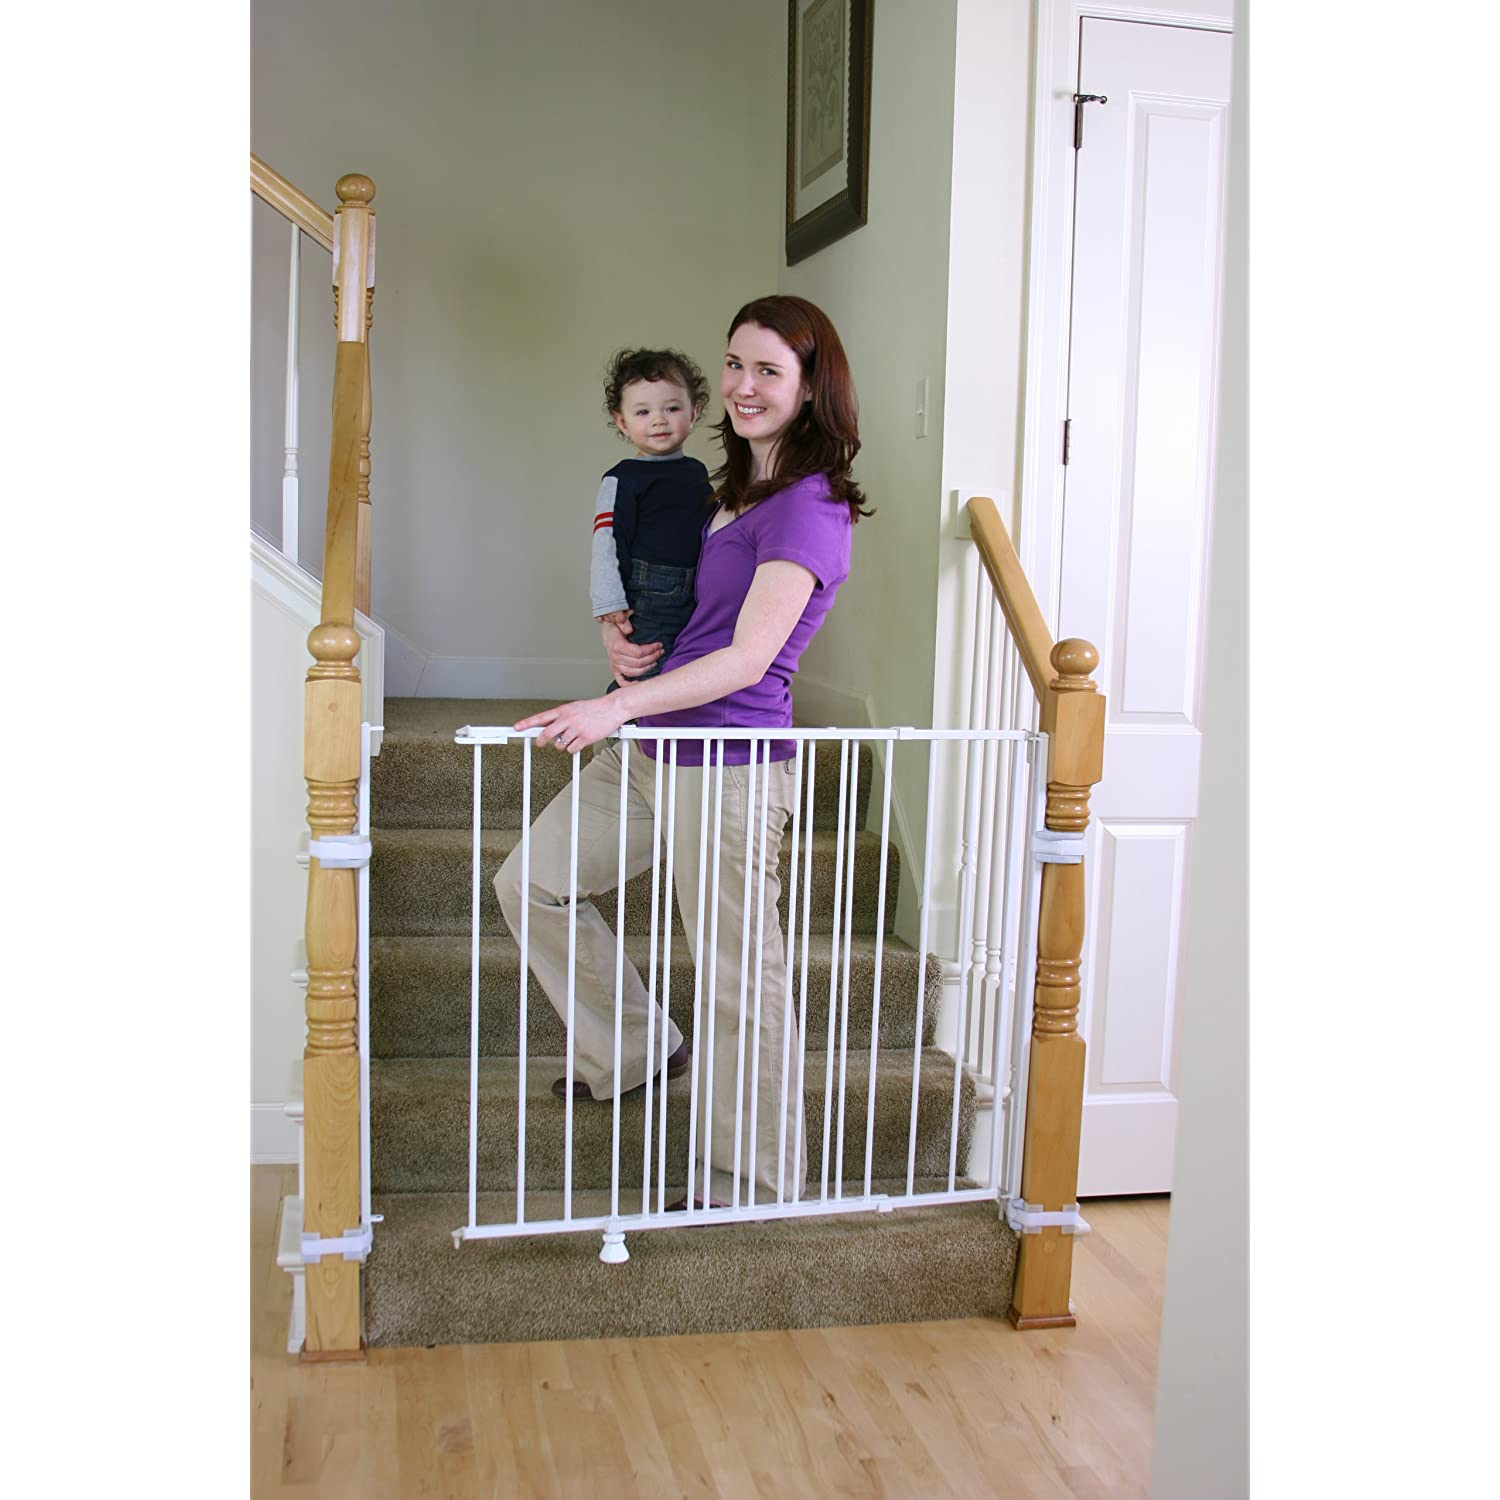 Regalo 1235 Top of Stairs Gate Extra Tall Metal Stepover Expandable Safety Gate - White at Sears.com